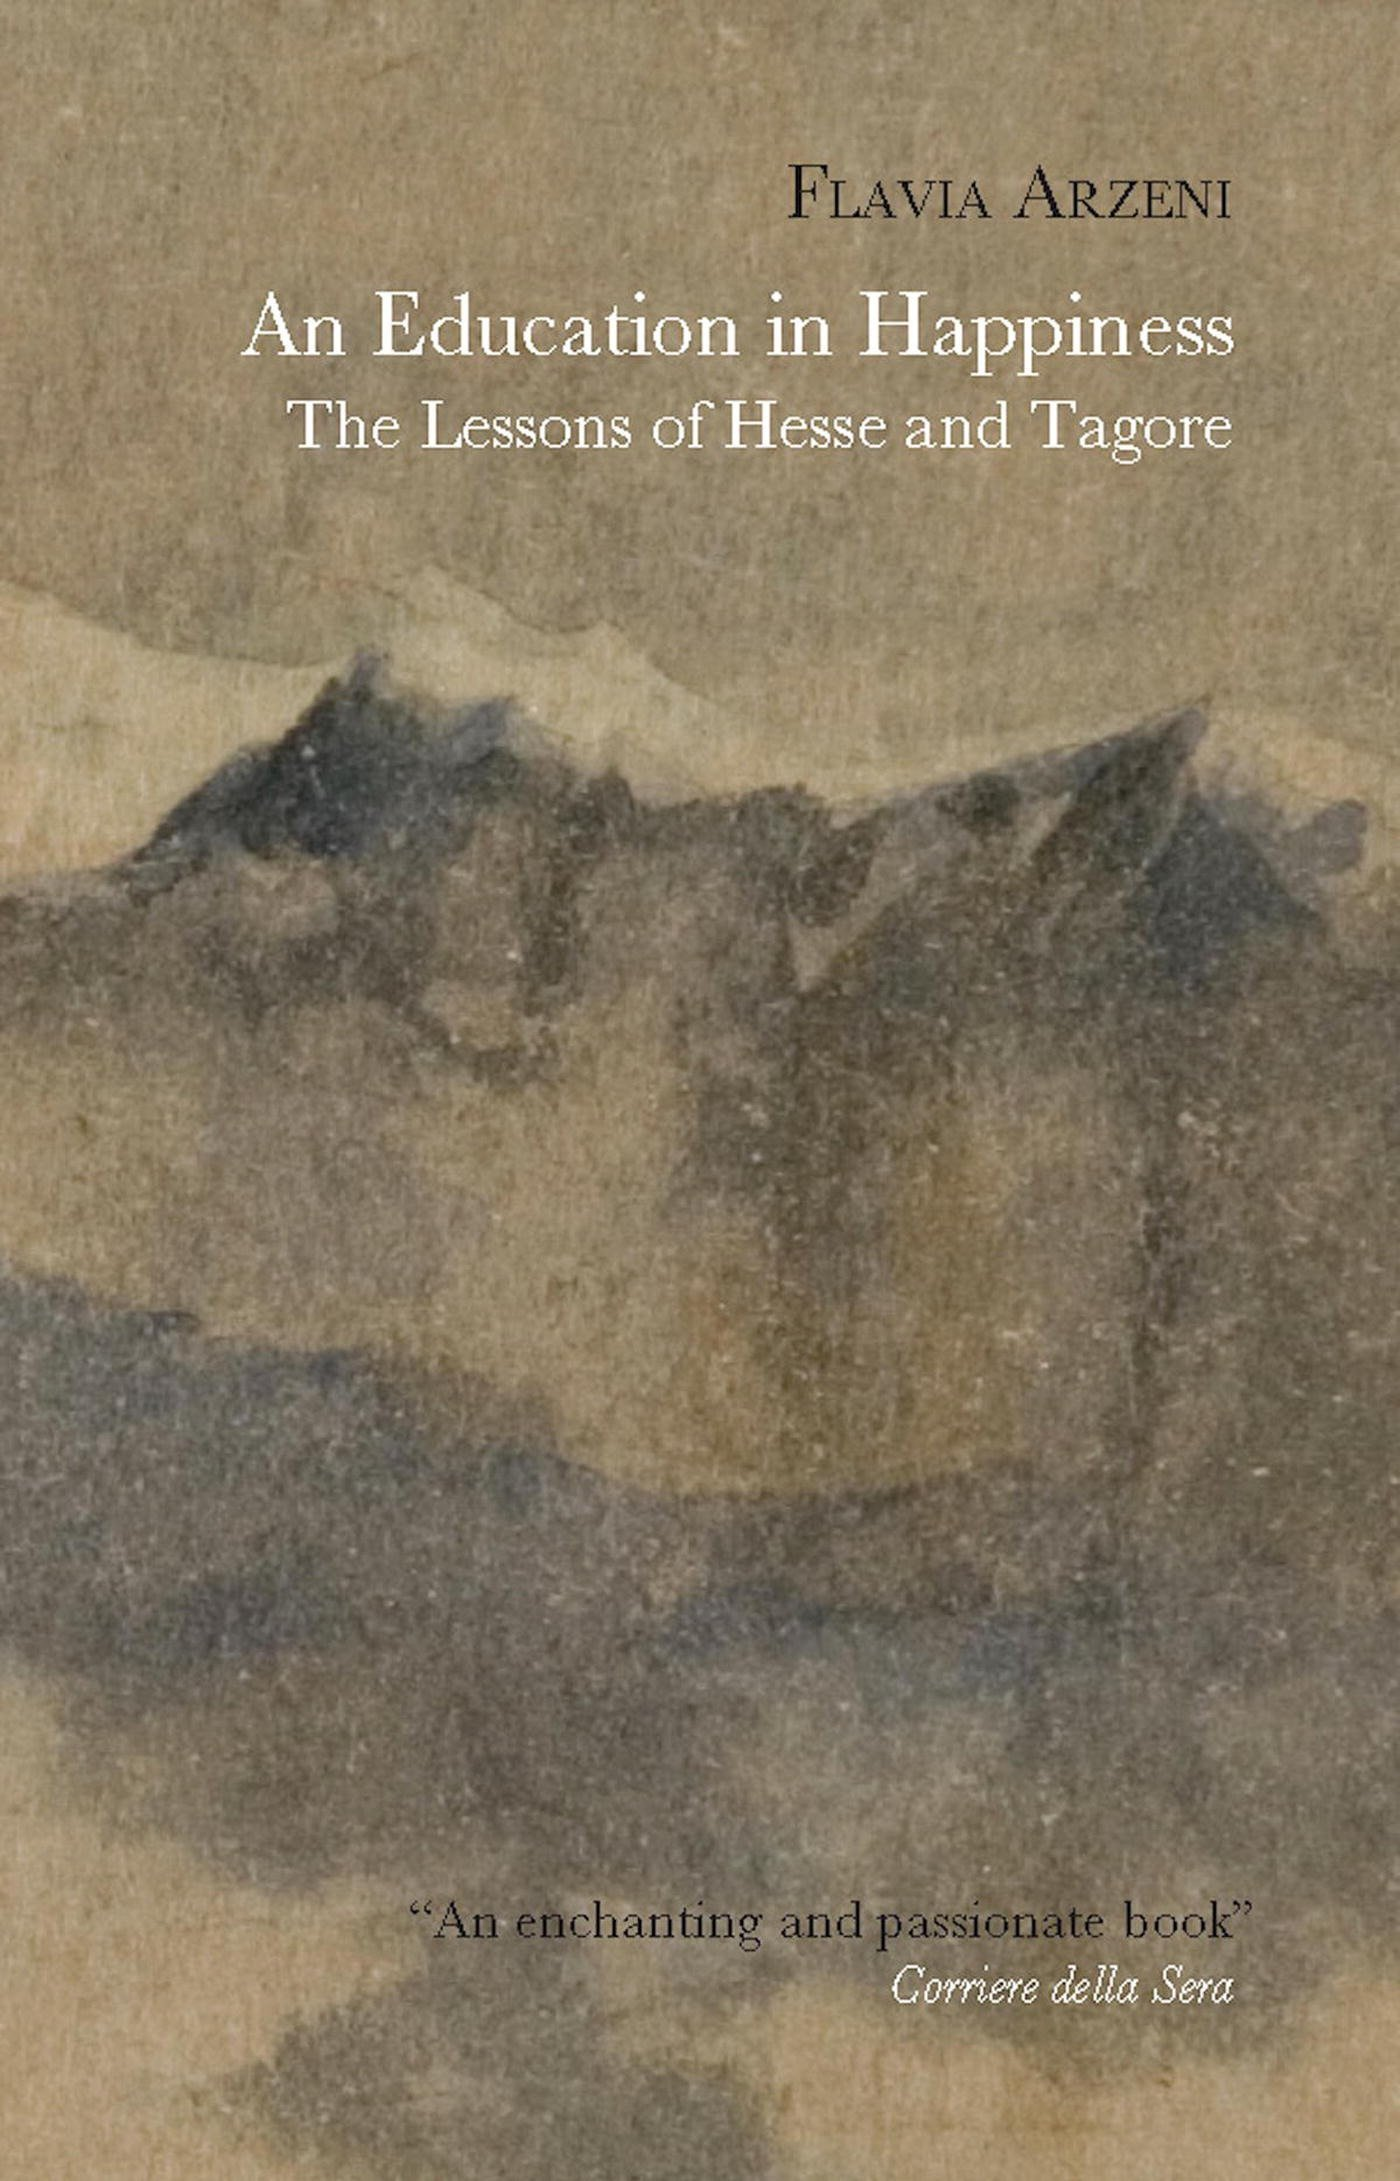 Download An Education in Happiness: The Lessons of Hesse and Tagore (Pushkin Collection) Text fb2 ebook